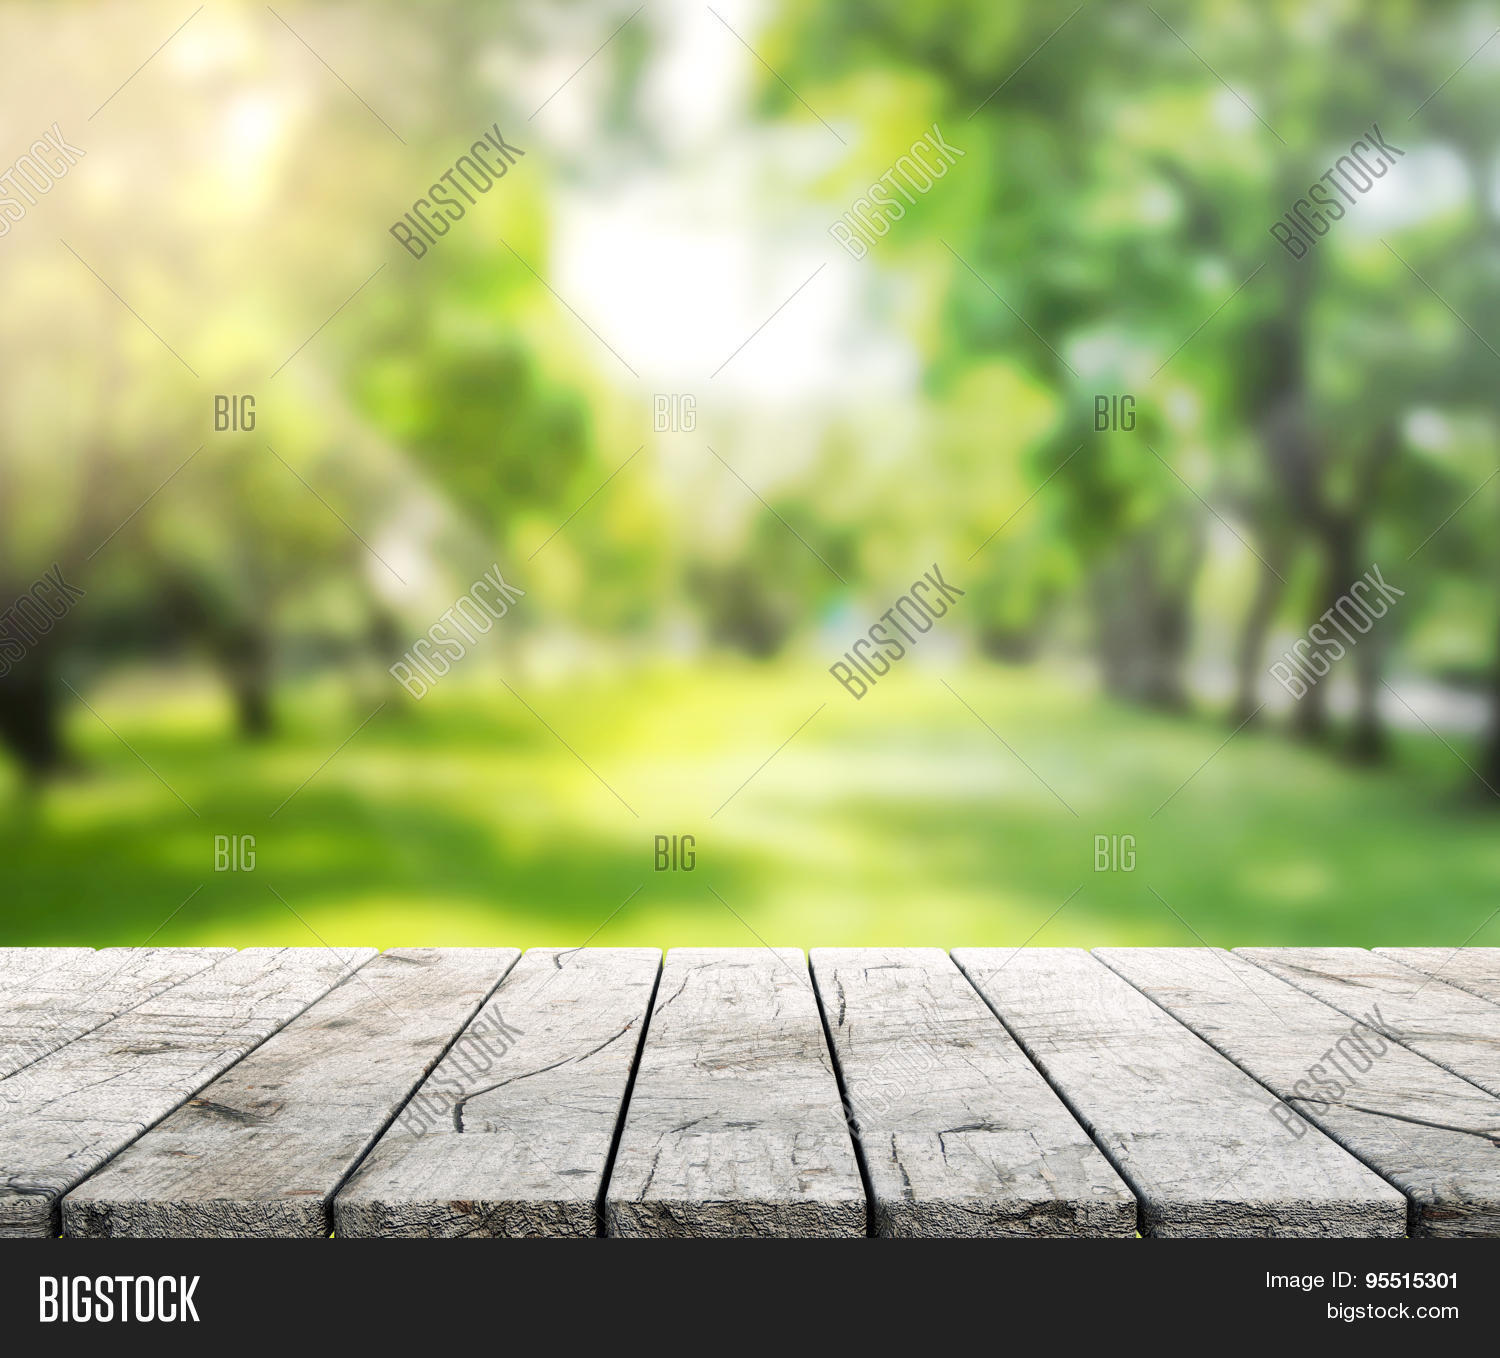 abstract,advertise,backdrop,background,board,brochure,clear,copy,cover,day,deck,design,display,empty,empty table,foliage,garden,grass,grass background,green,layout,lights,montage,natural background,nature,nature abstract,nature background,nature backgrounds,open,outdoor,page,park,plank,poster,retro,rustic,rustic background,soft background,space,spring,summer,sunny,table,tabletop,template,the best,wood,wood deck,wooden